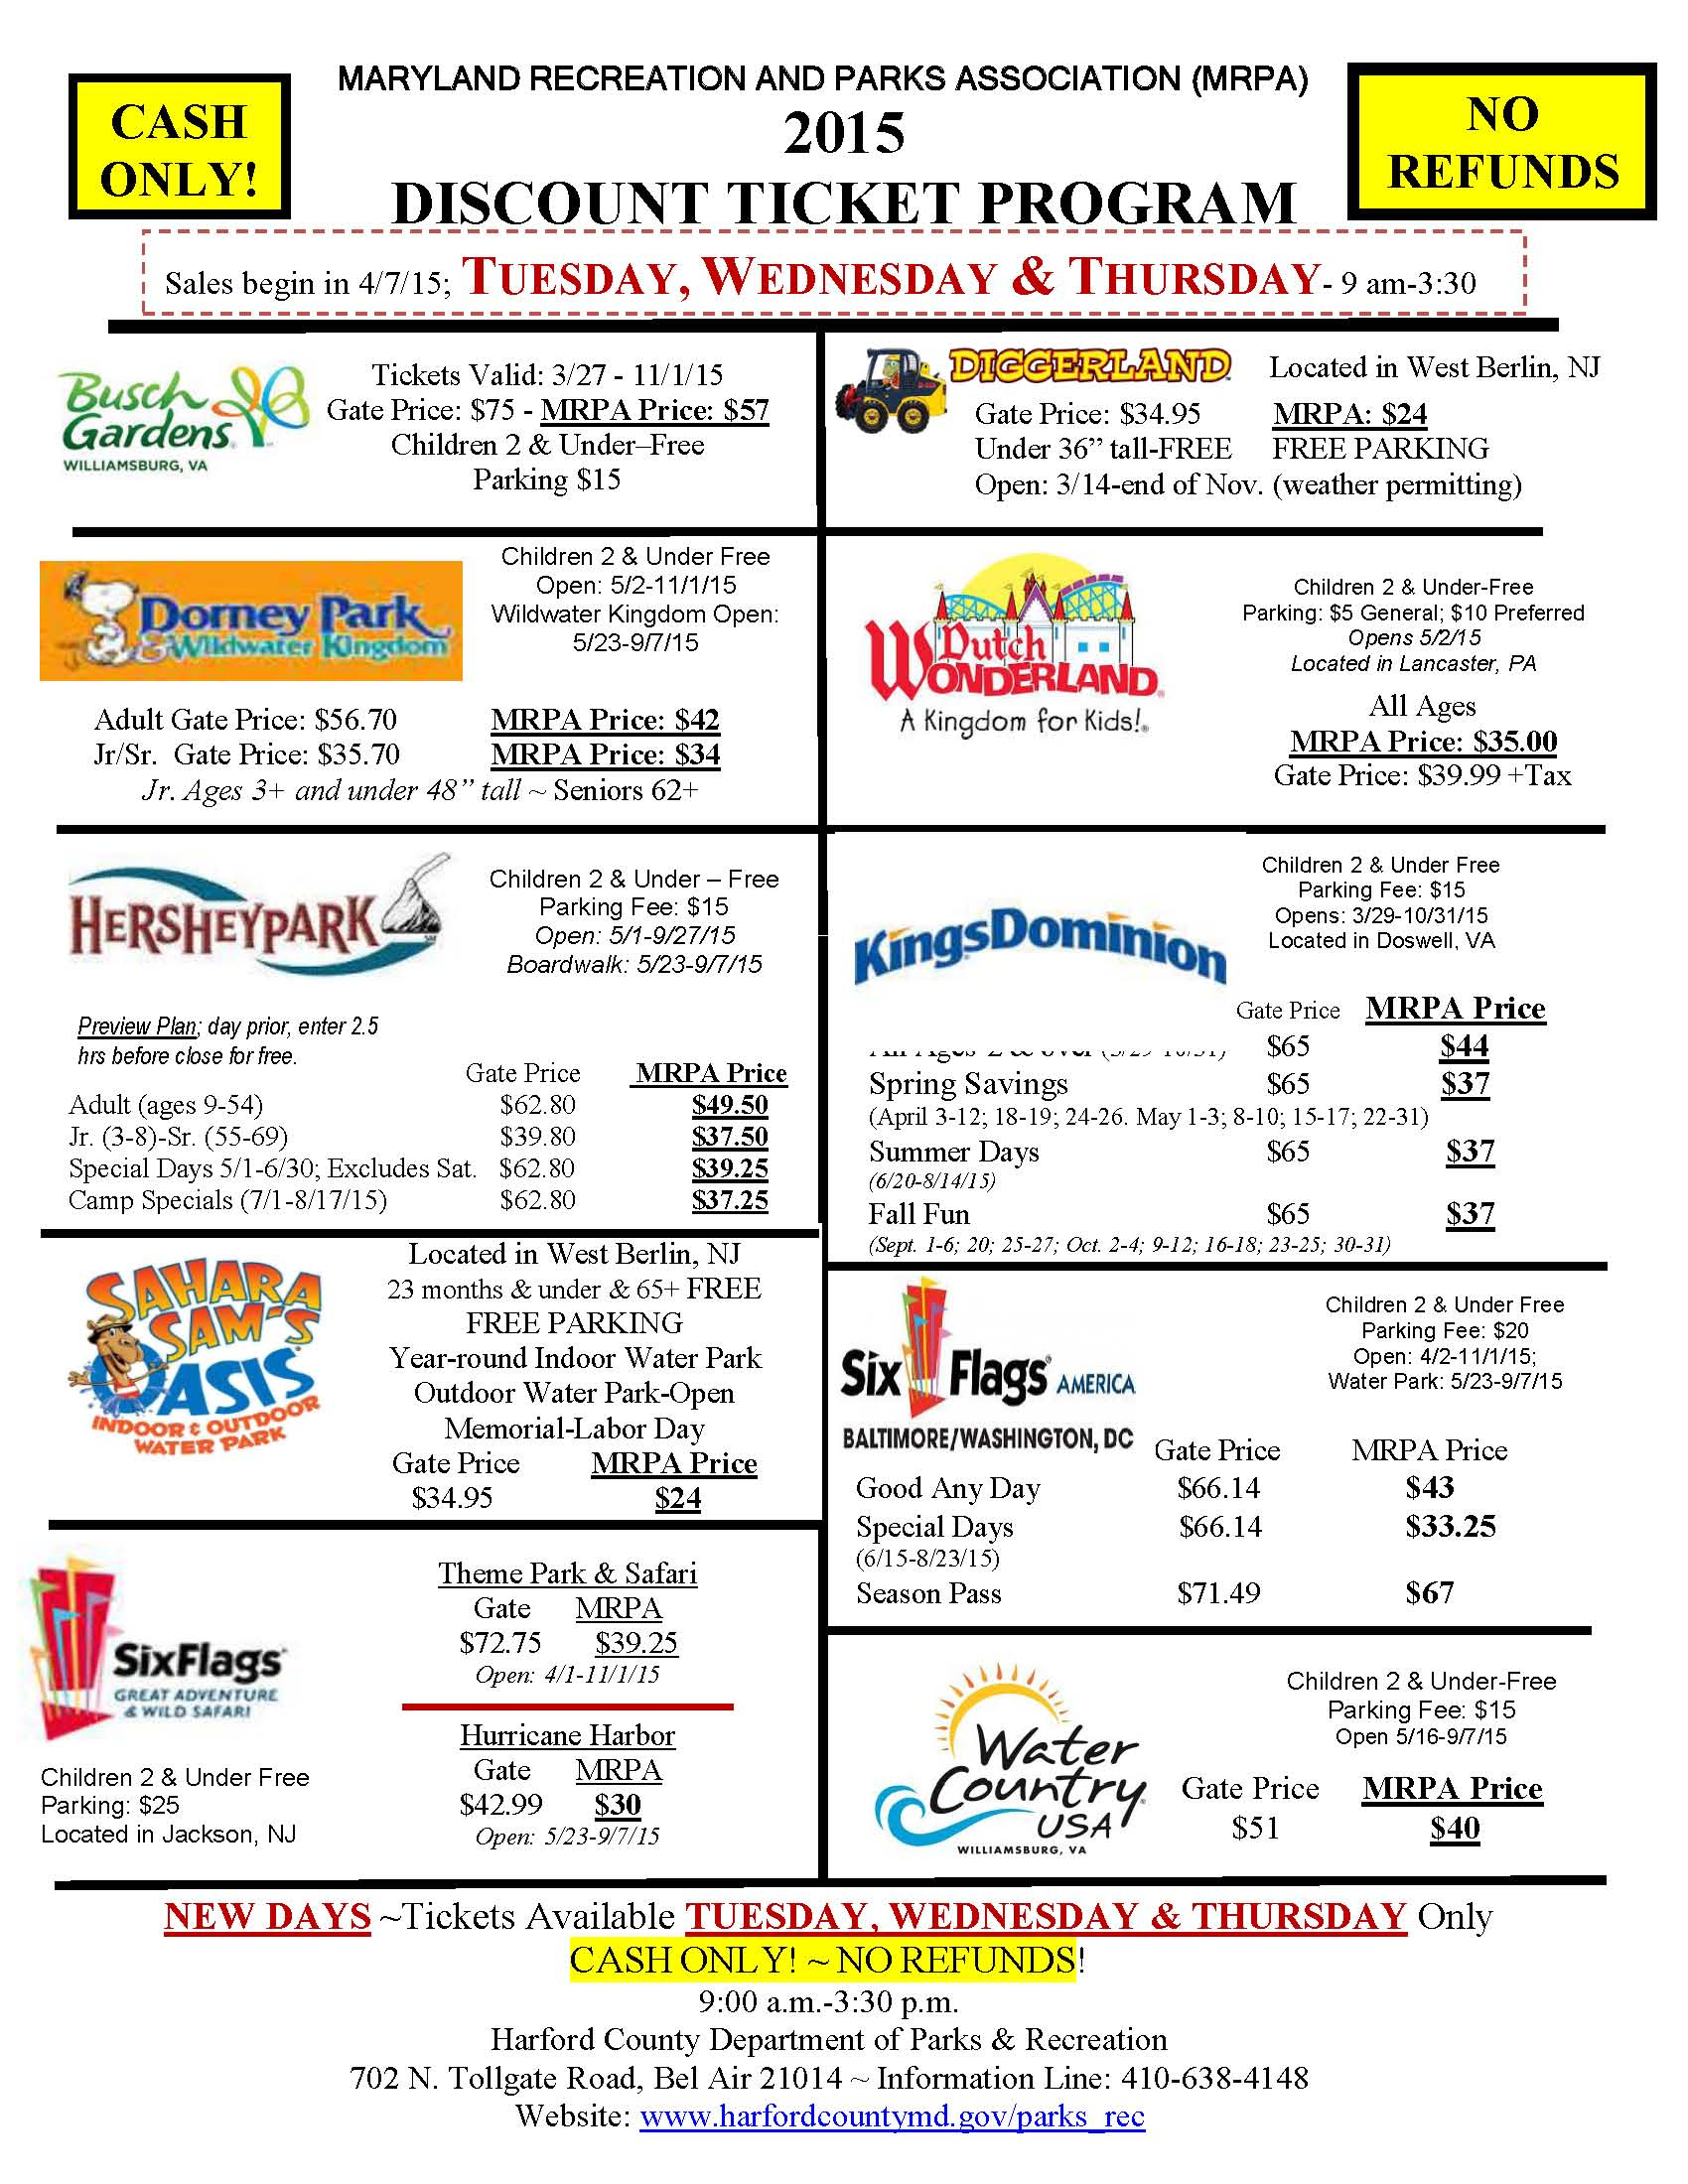 Discounted Amusement Park Tickets Available From Harford County Parks & Rec